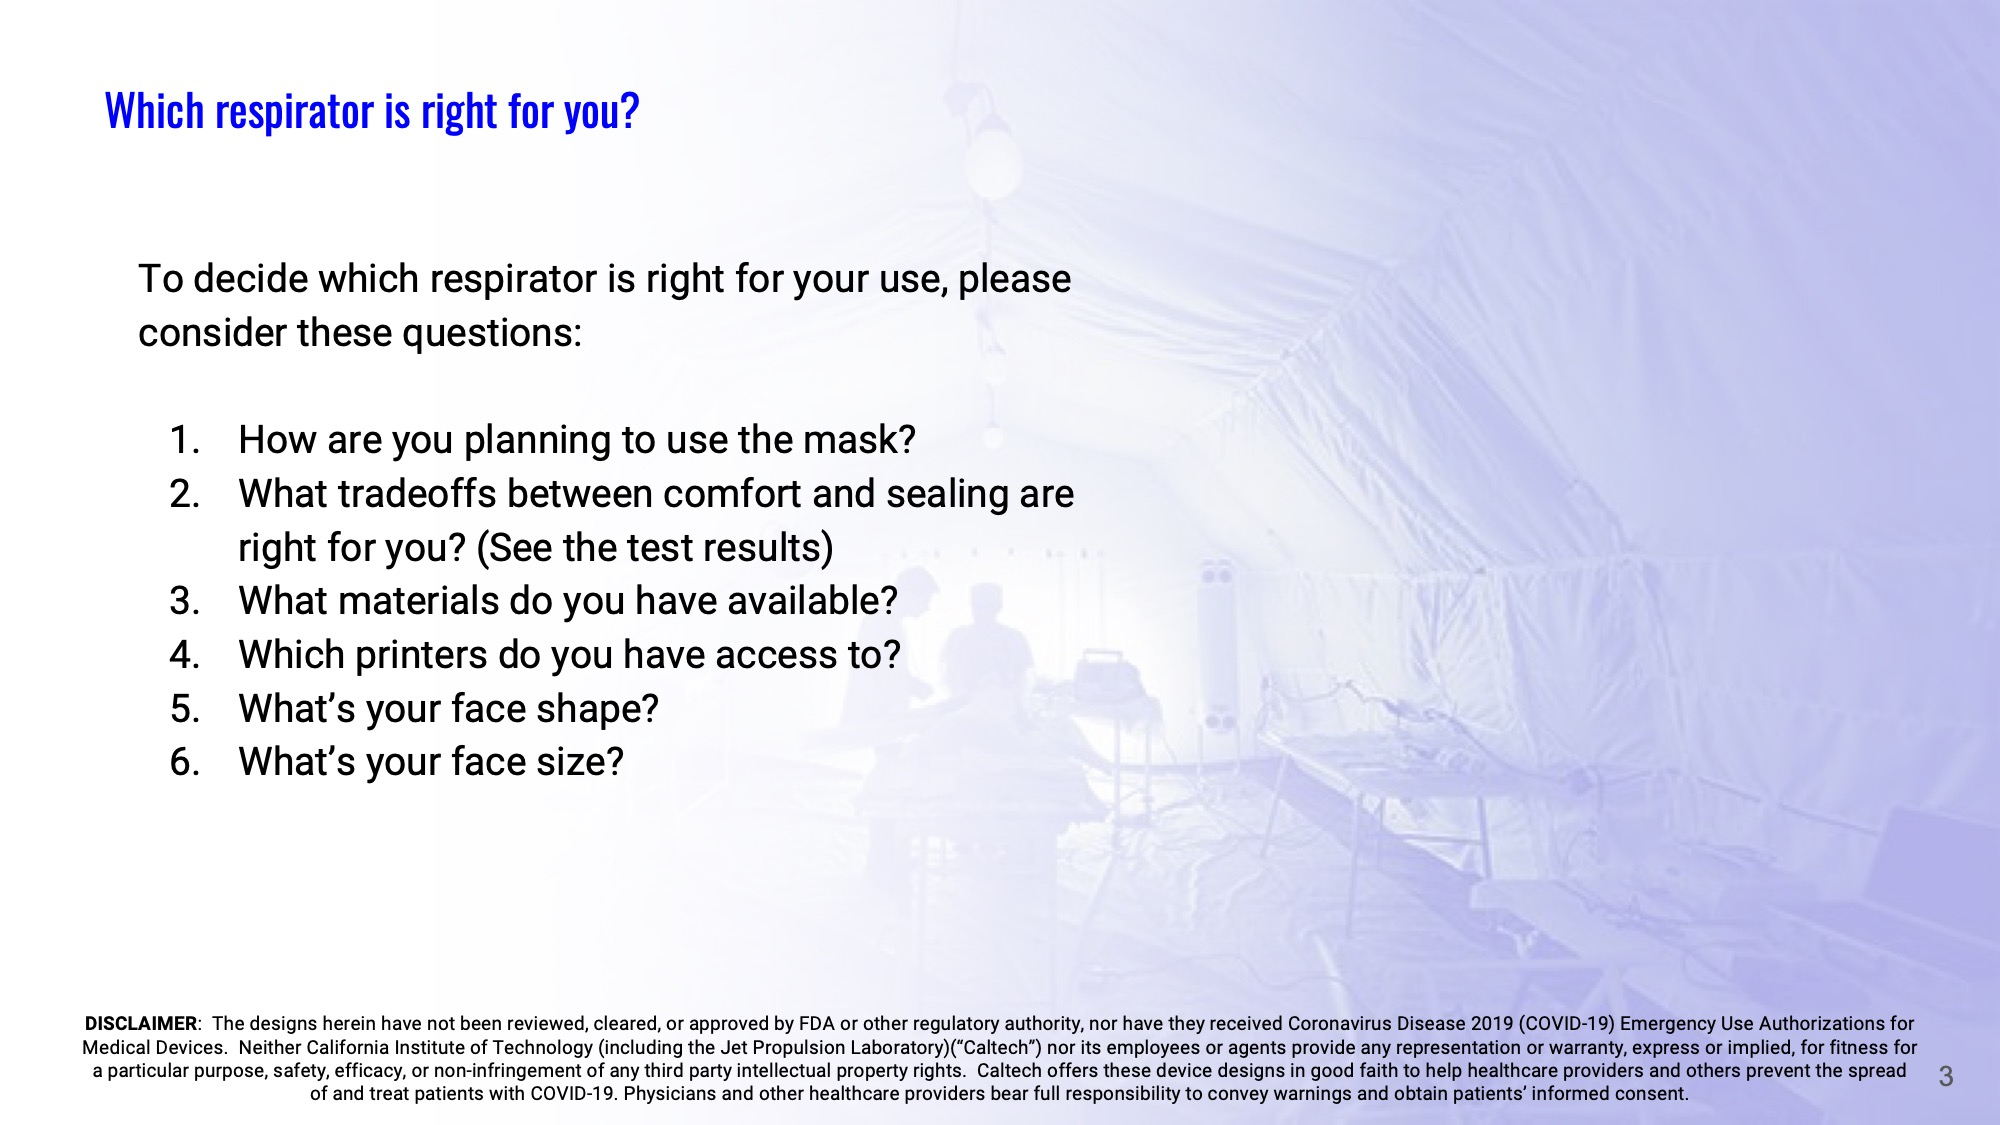 Slide 3: To decide which respirator is right for your use, please consider these questions: 1-How are you planning to use the mask? 2-What tradeoffs between comfort and sealing are right for you? (See the test results) 3-What materials do you have available? 4-Which printers do you have access to? 5-What's your face shape? 6-What's your face size?